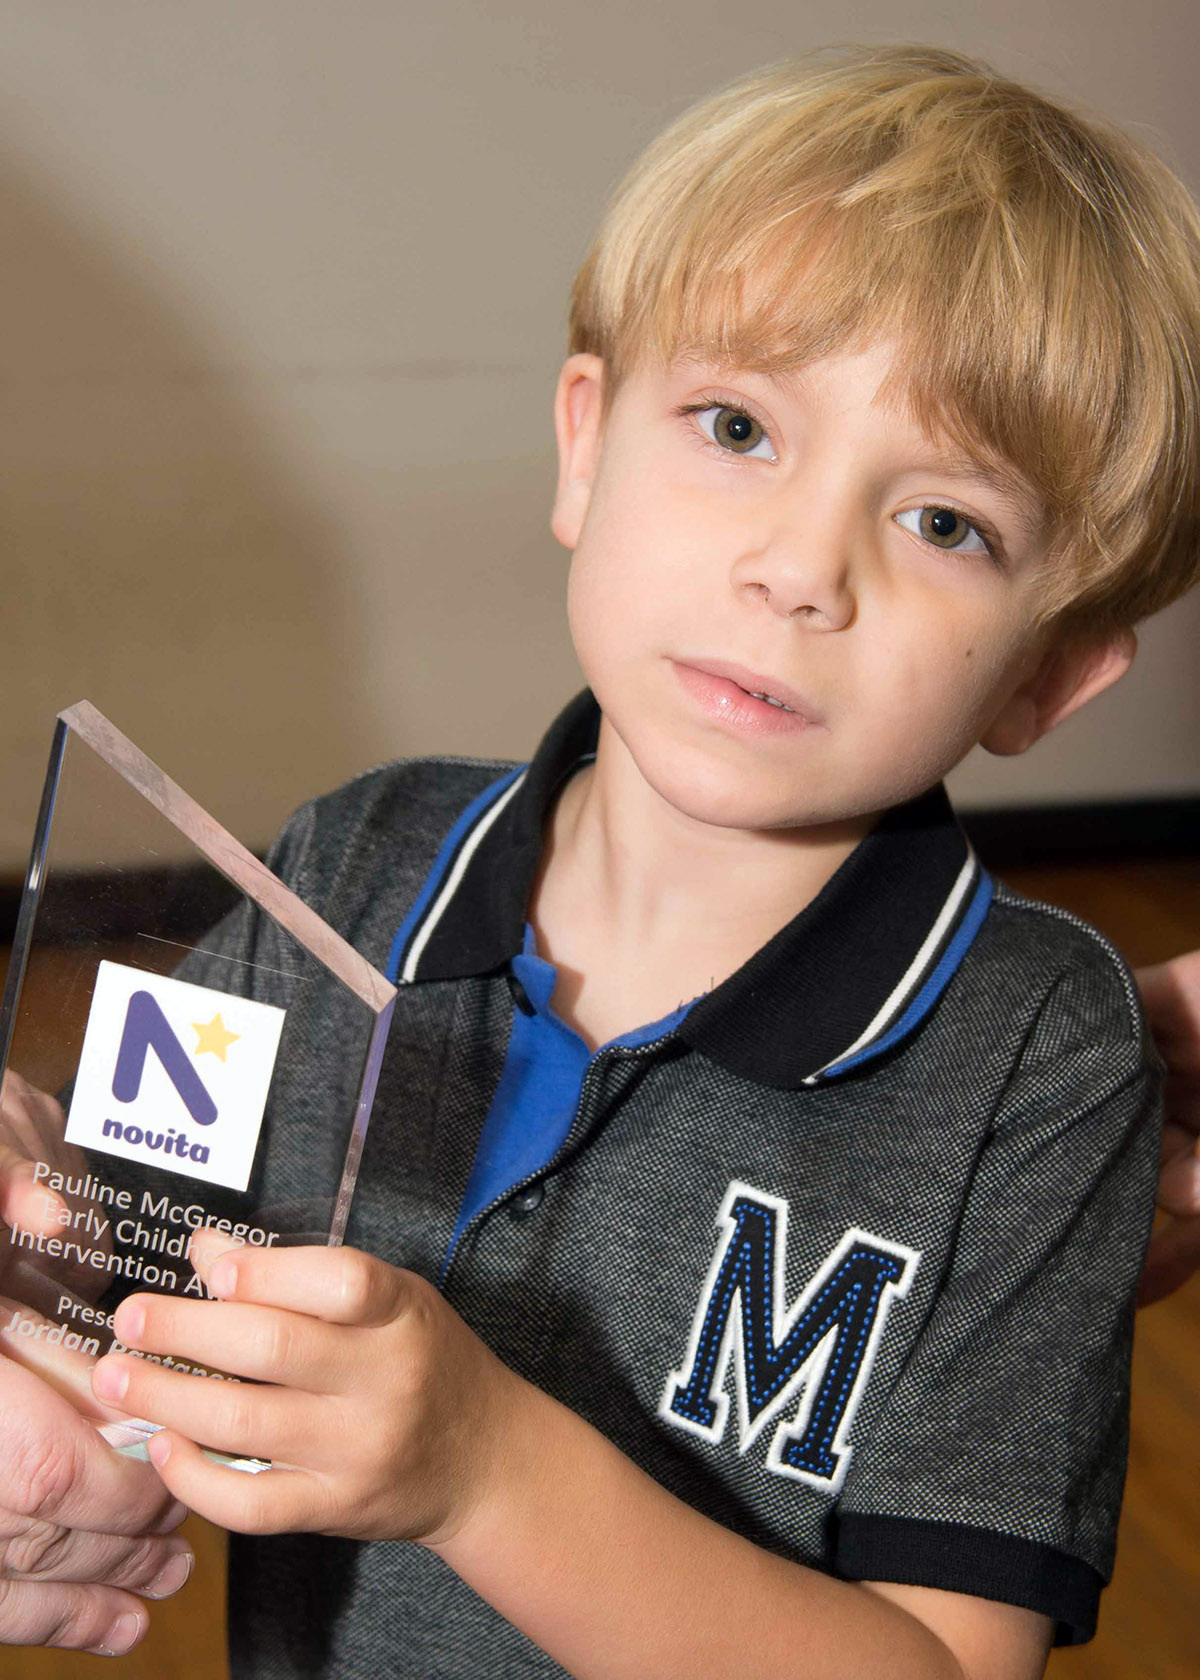 Jordan holding his award